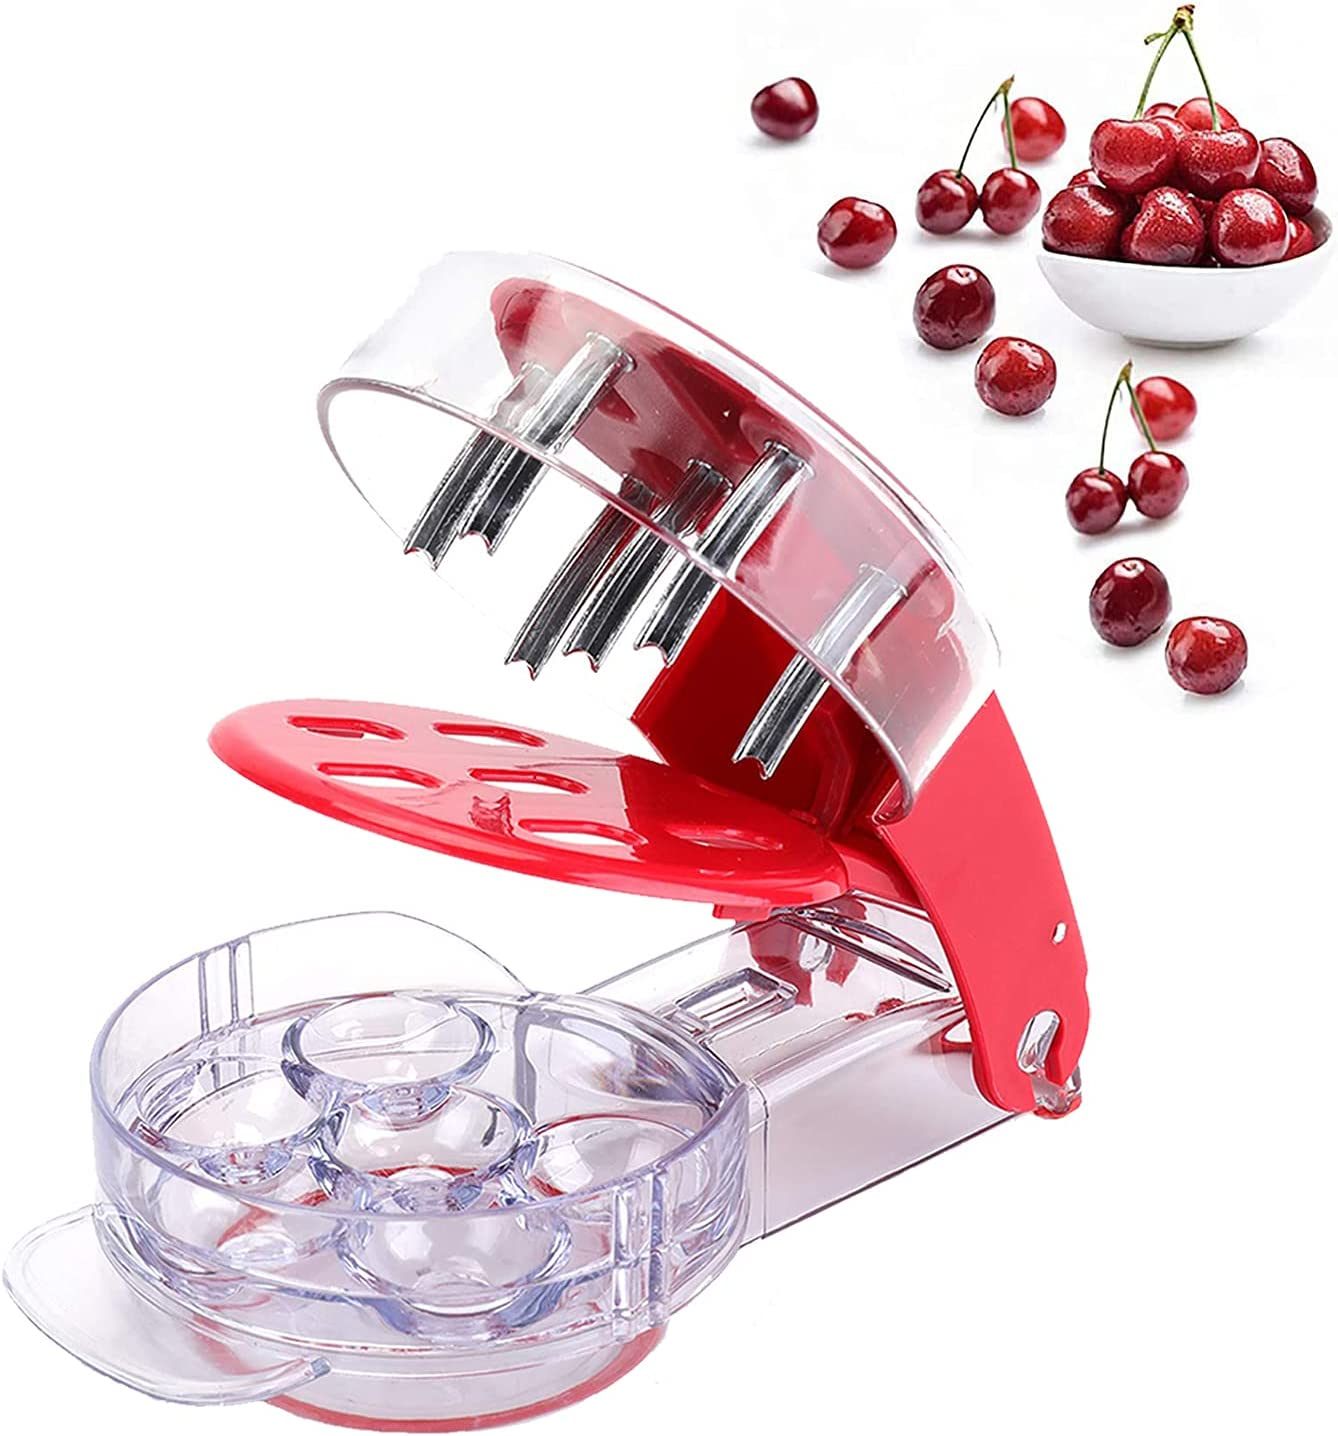 ORIJOYNA Cherry Pitter Tool - 6 Fruit Core Stoner Pit Remover (R